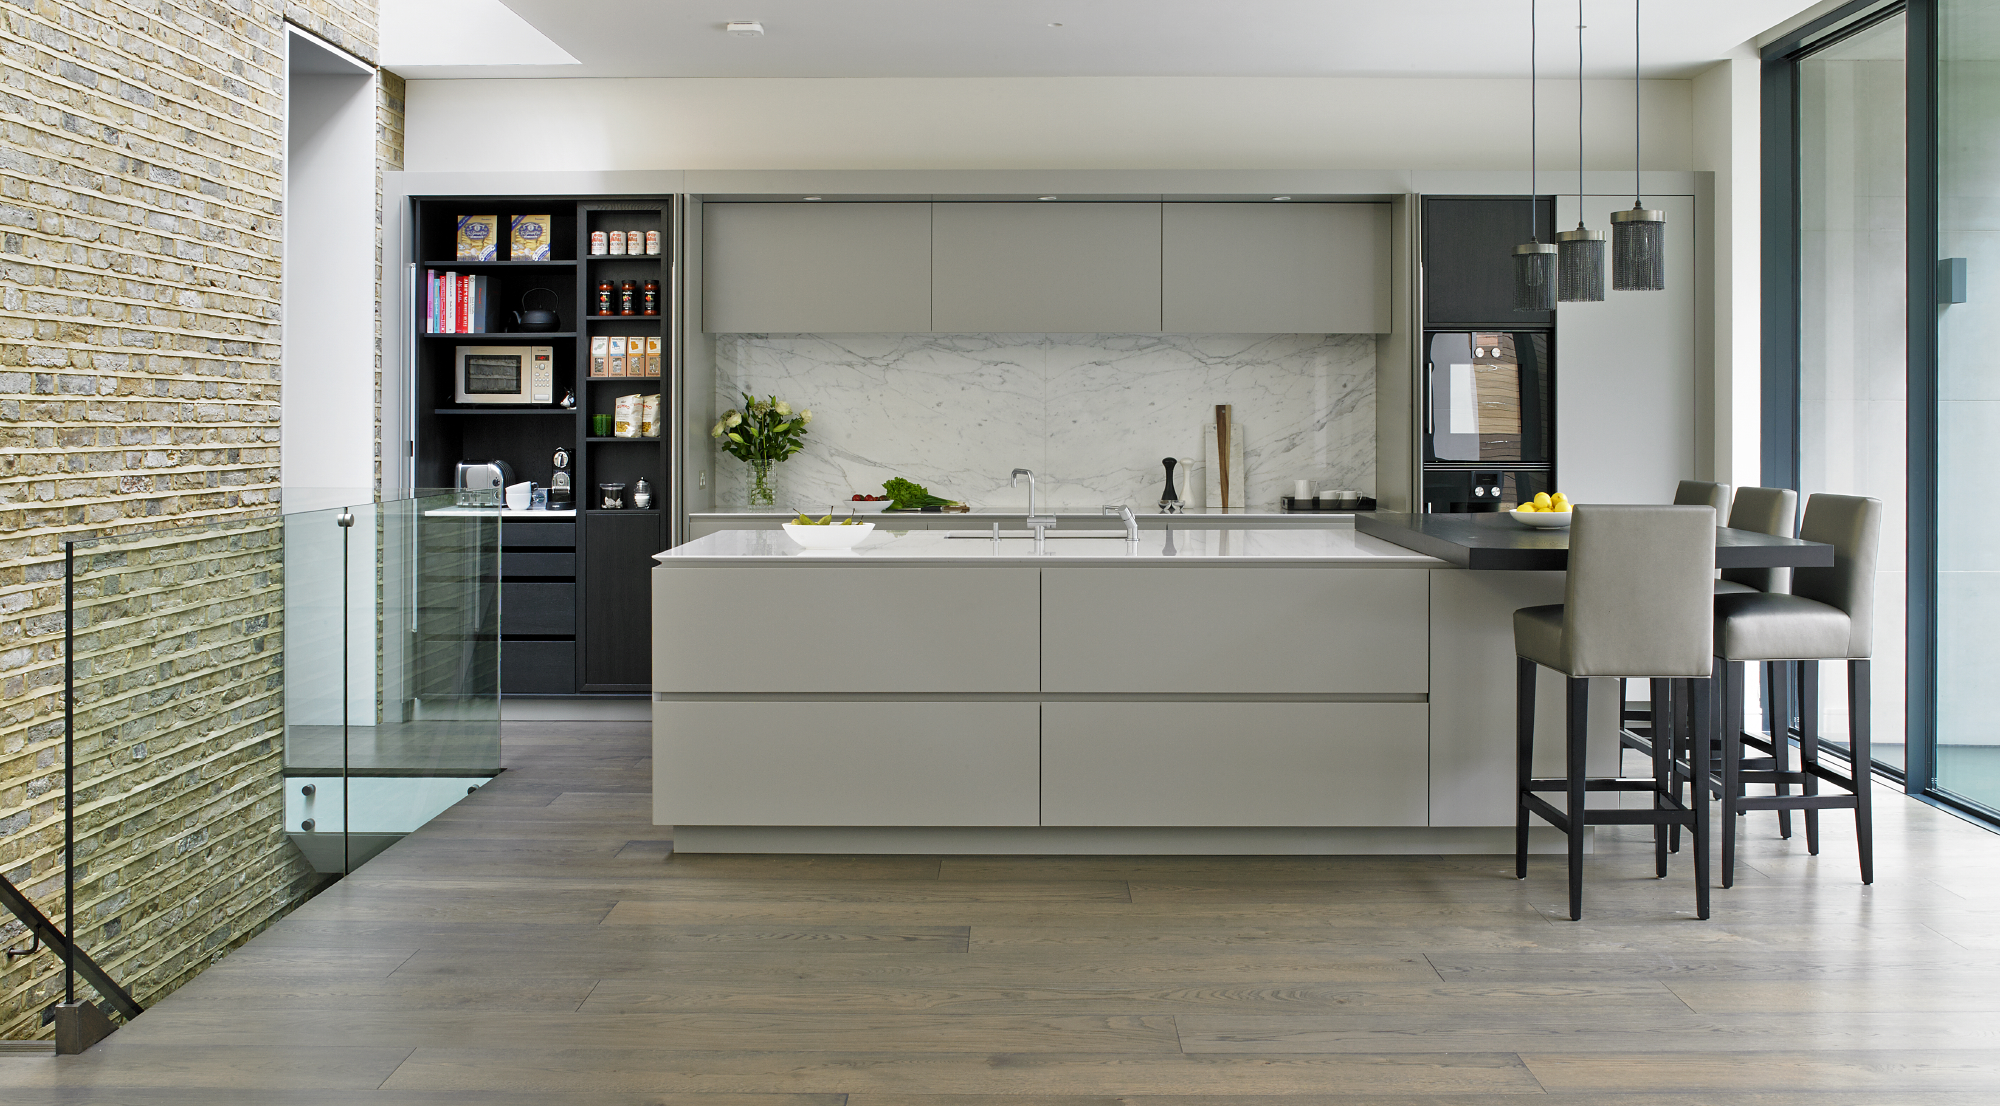 Victorian family kitchen Wandsworth - breakfast cupboard, island and bespoke cabinets